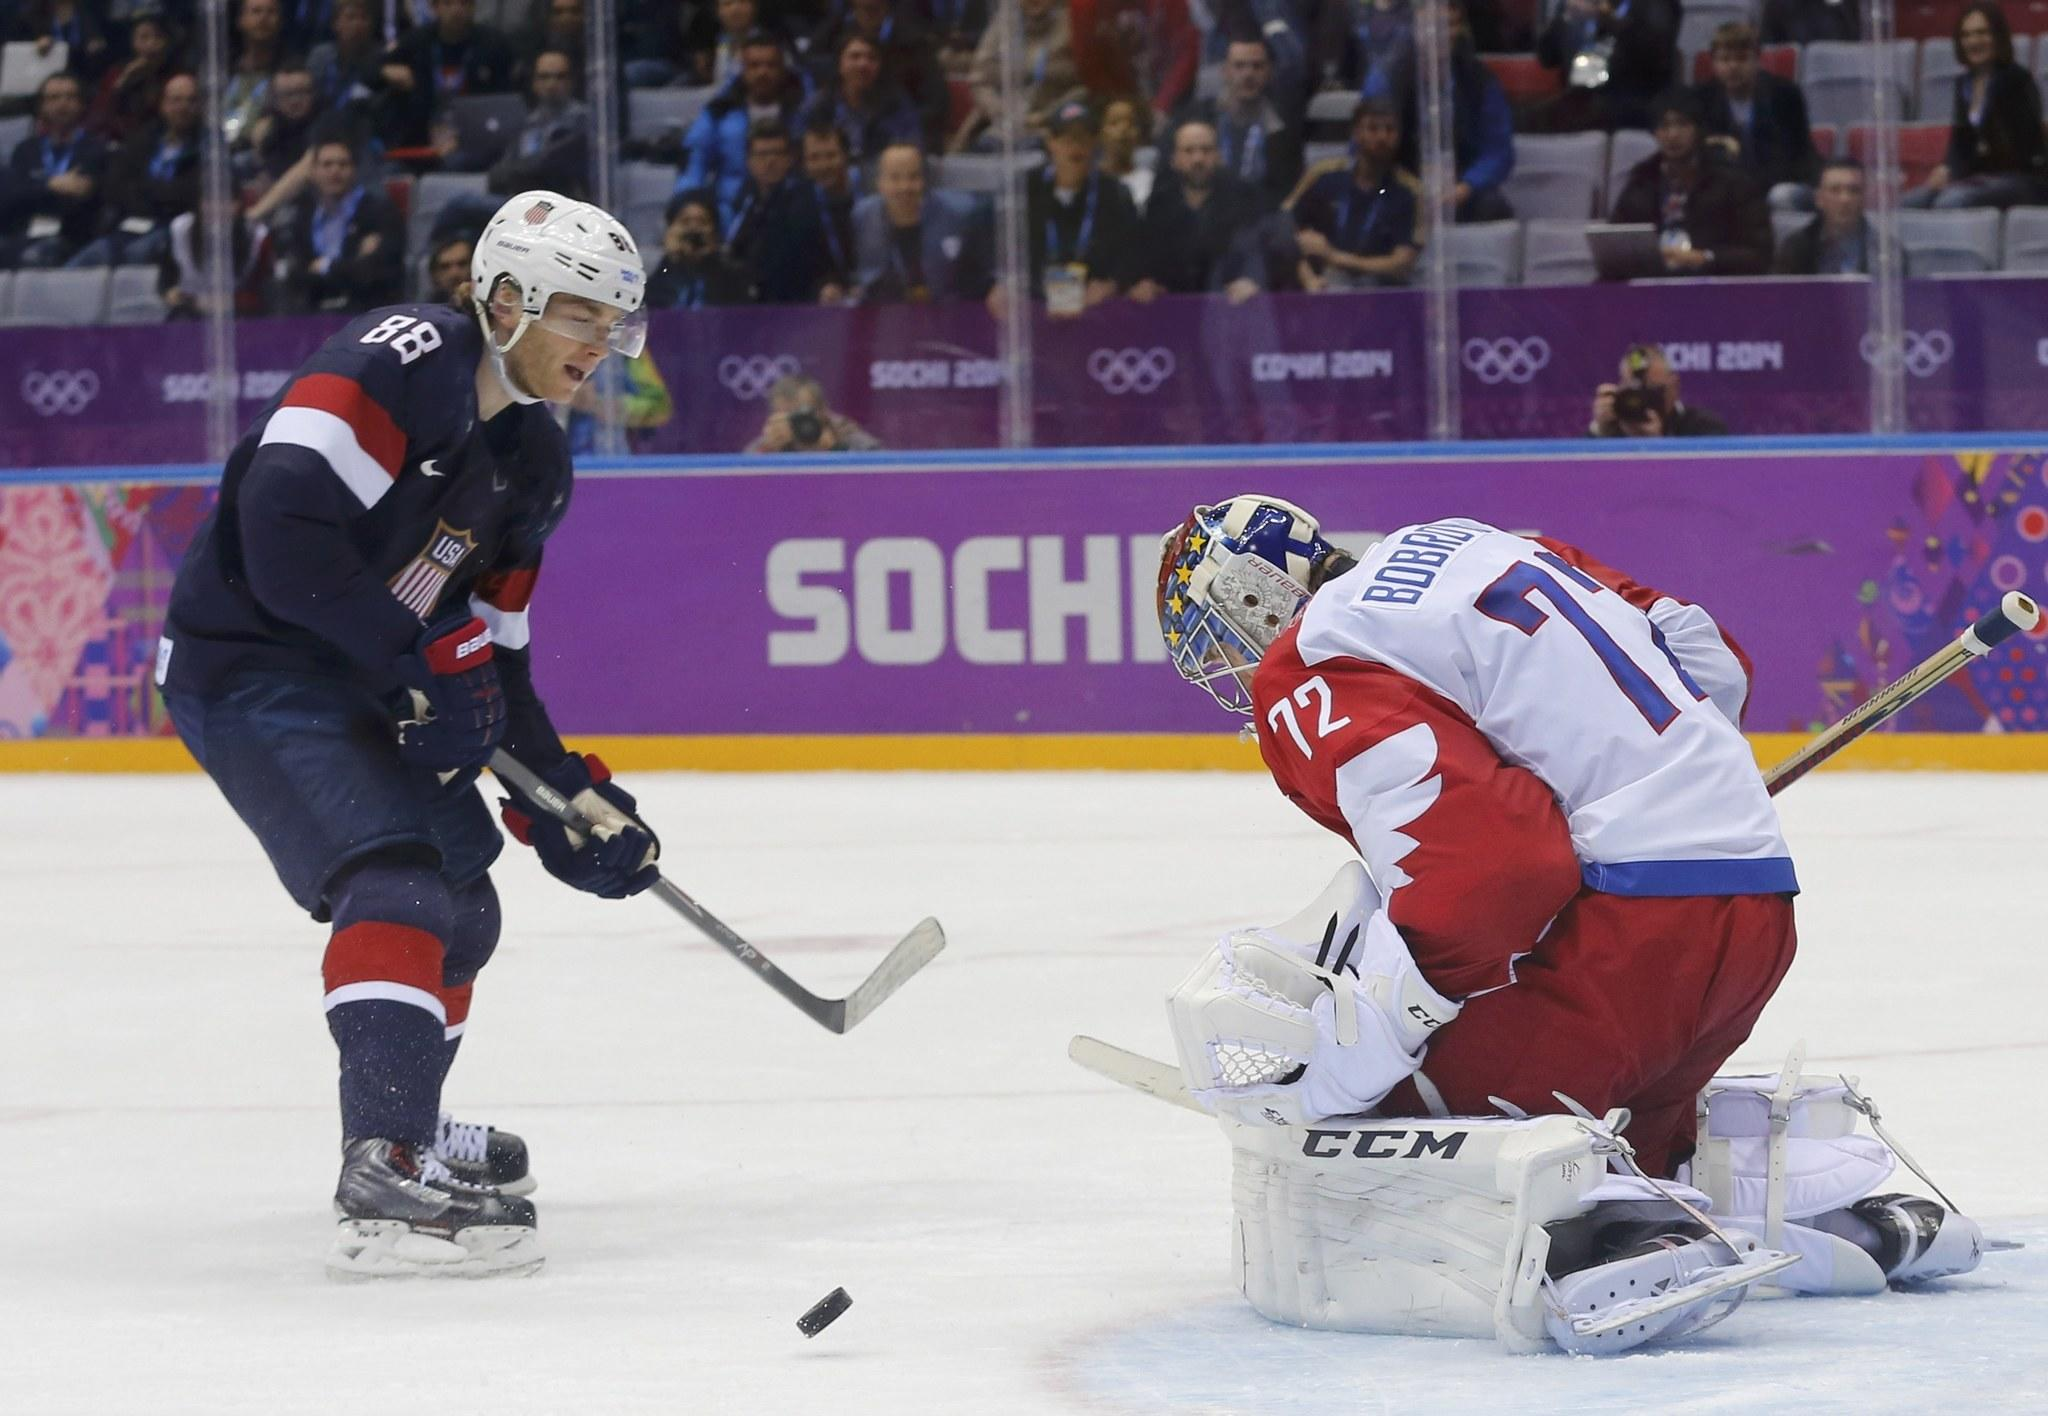 Russia's goalie Sergei Bobrovski makes a save on a breakaway by Team USA's Patrick Kane during overtime in their men's preliminary round ice hockey game at the 2014 Sochi Winter Olympic Games on Feb. 15